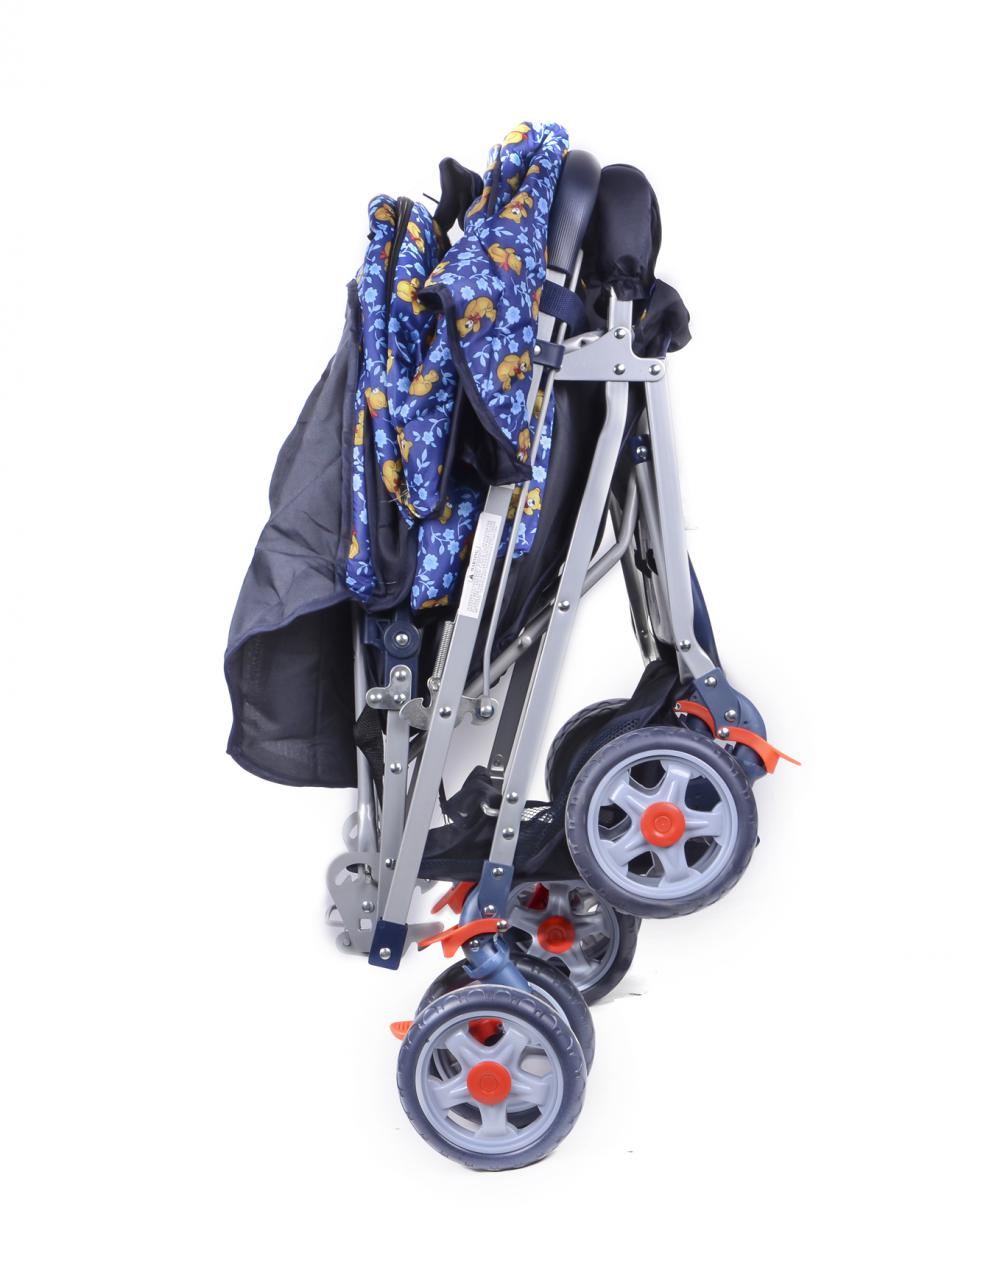 Baby Stroller with Reversible Handle Bar